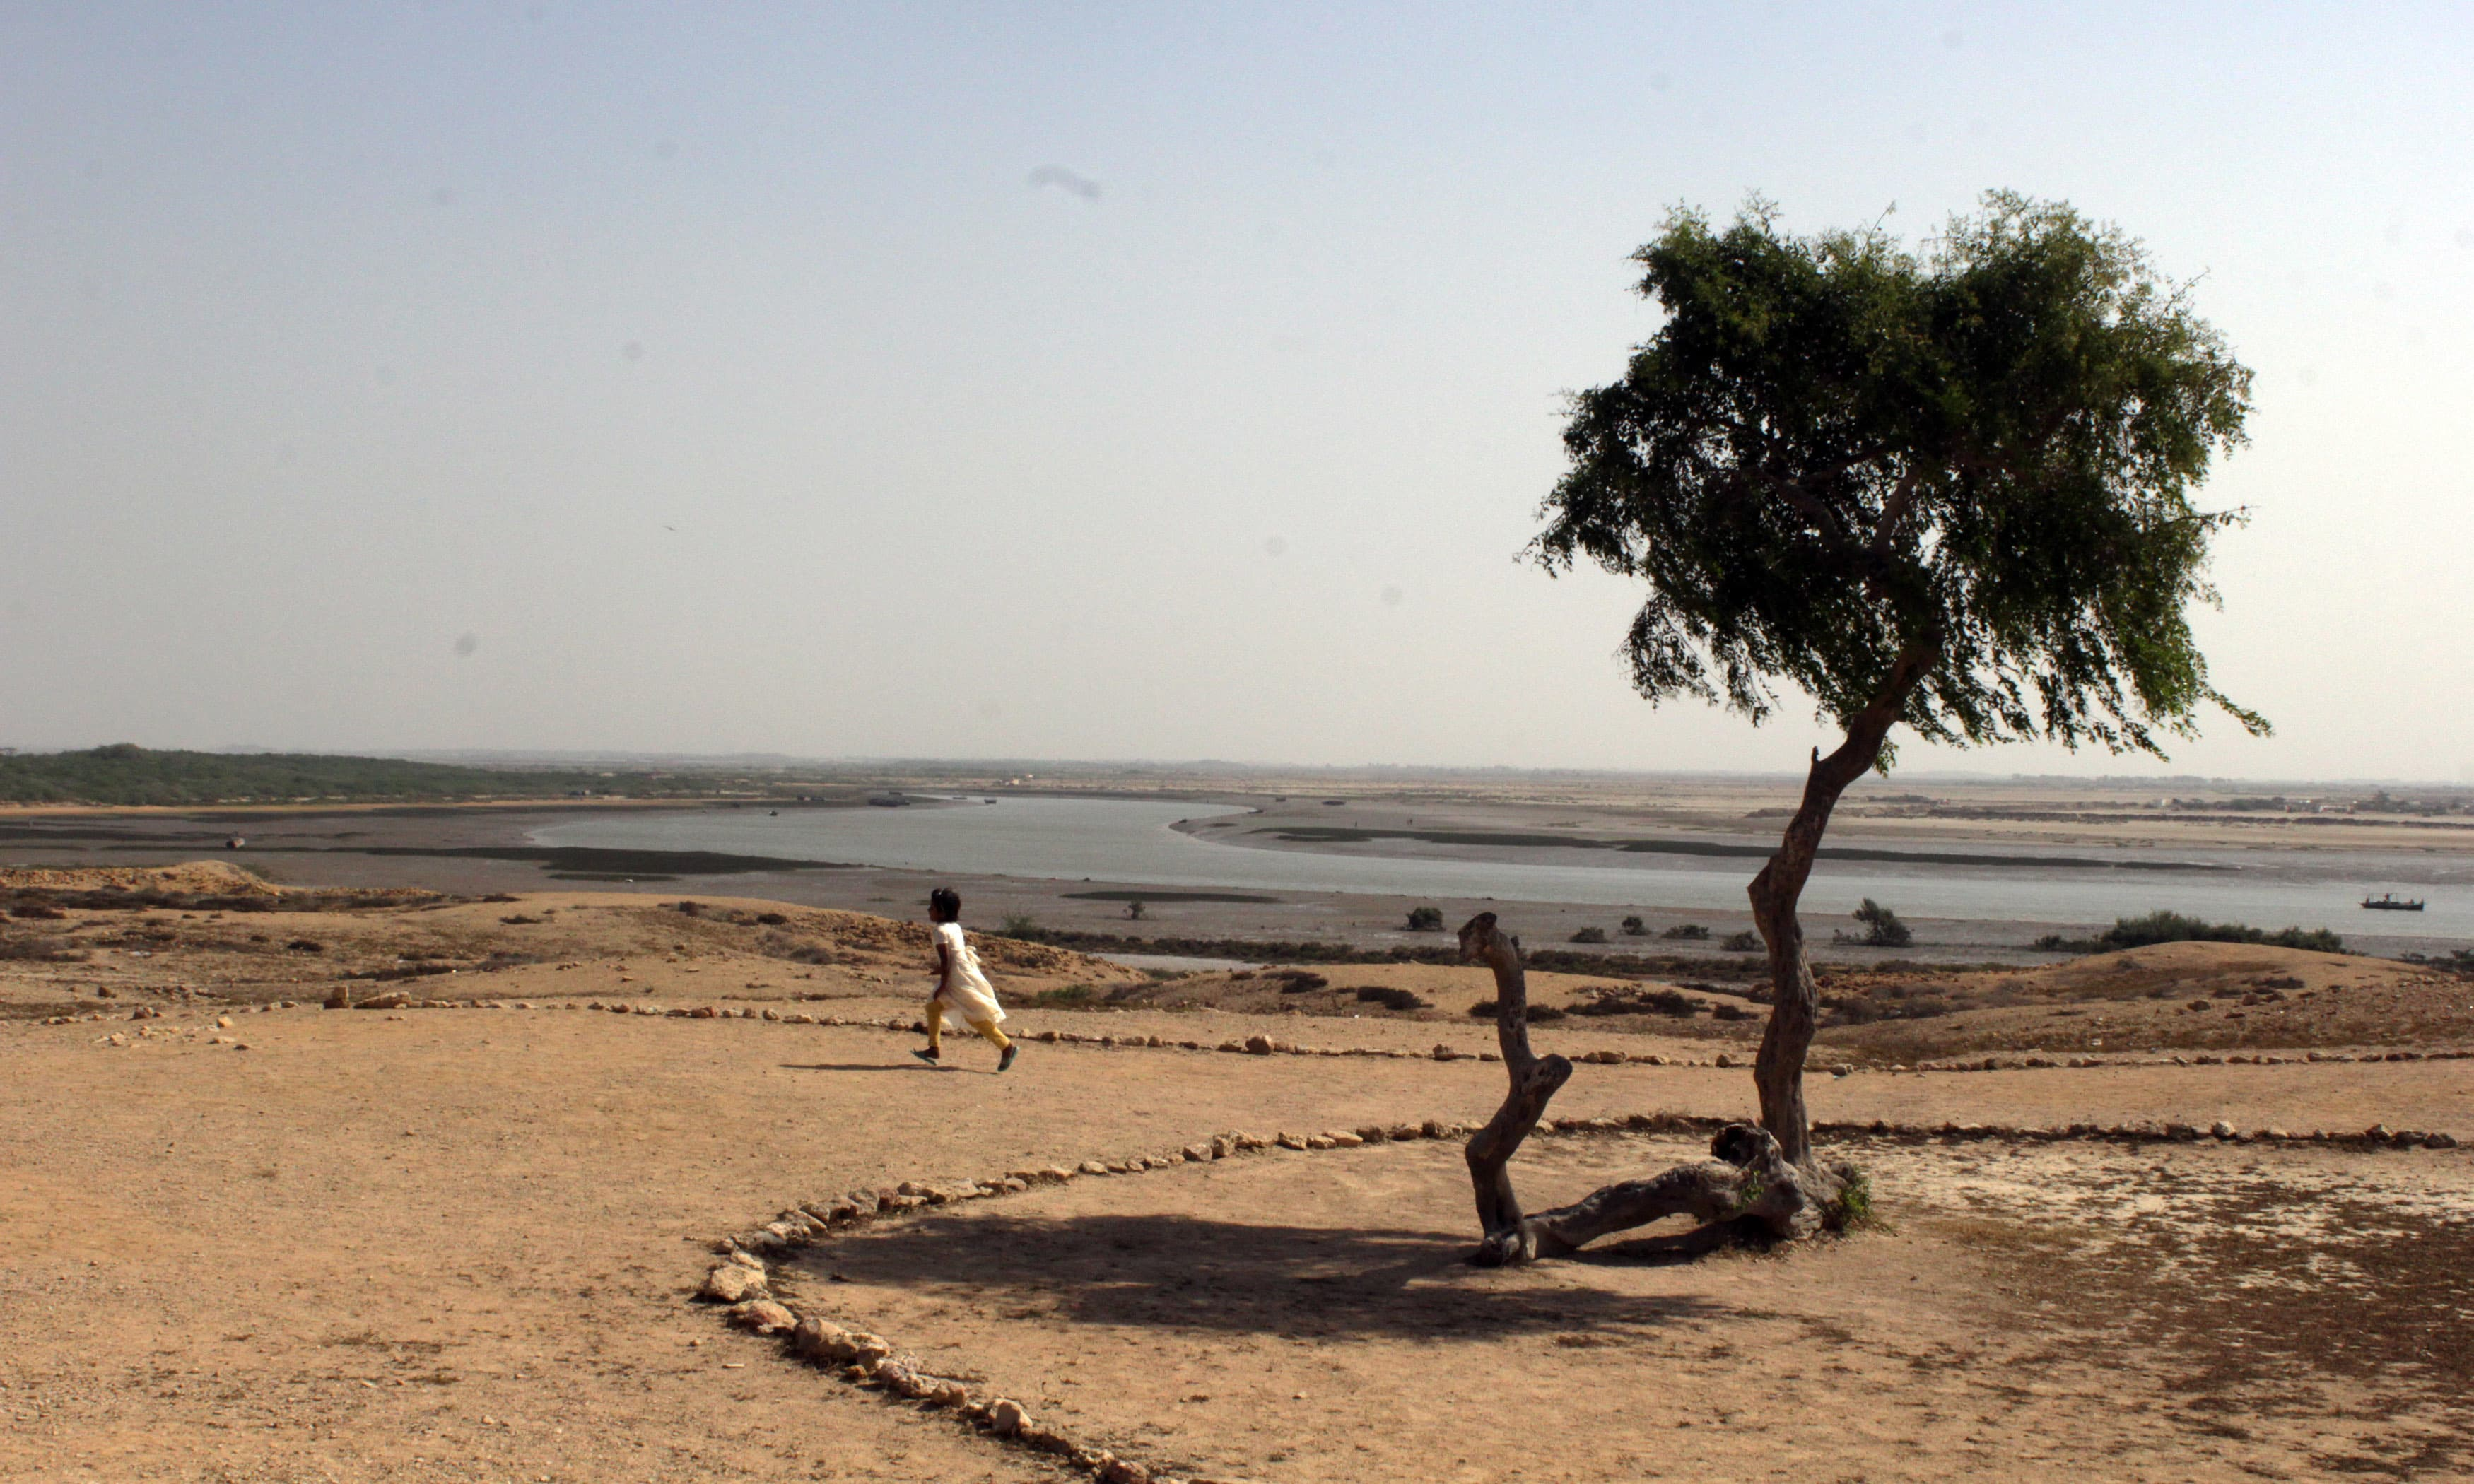 Indus Delta passes right next to the ancient city. —Tauseef Mallick